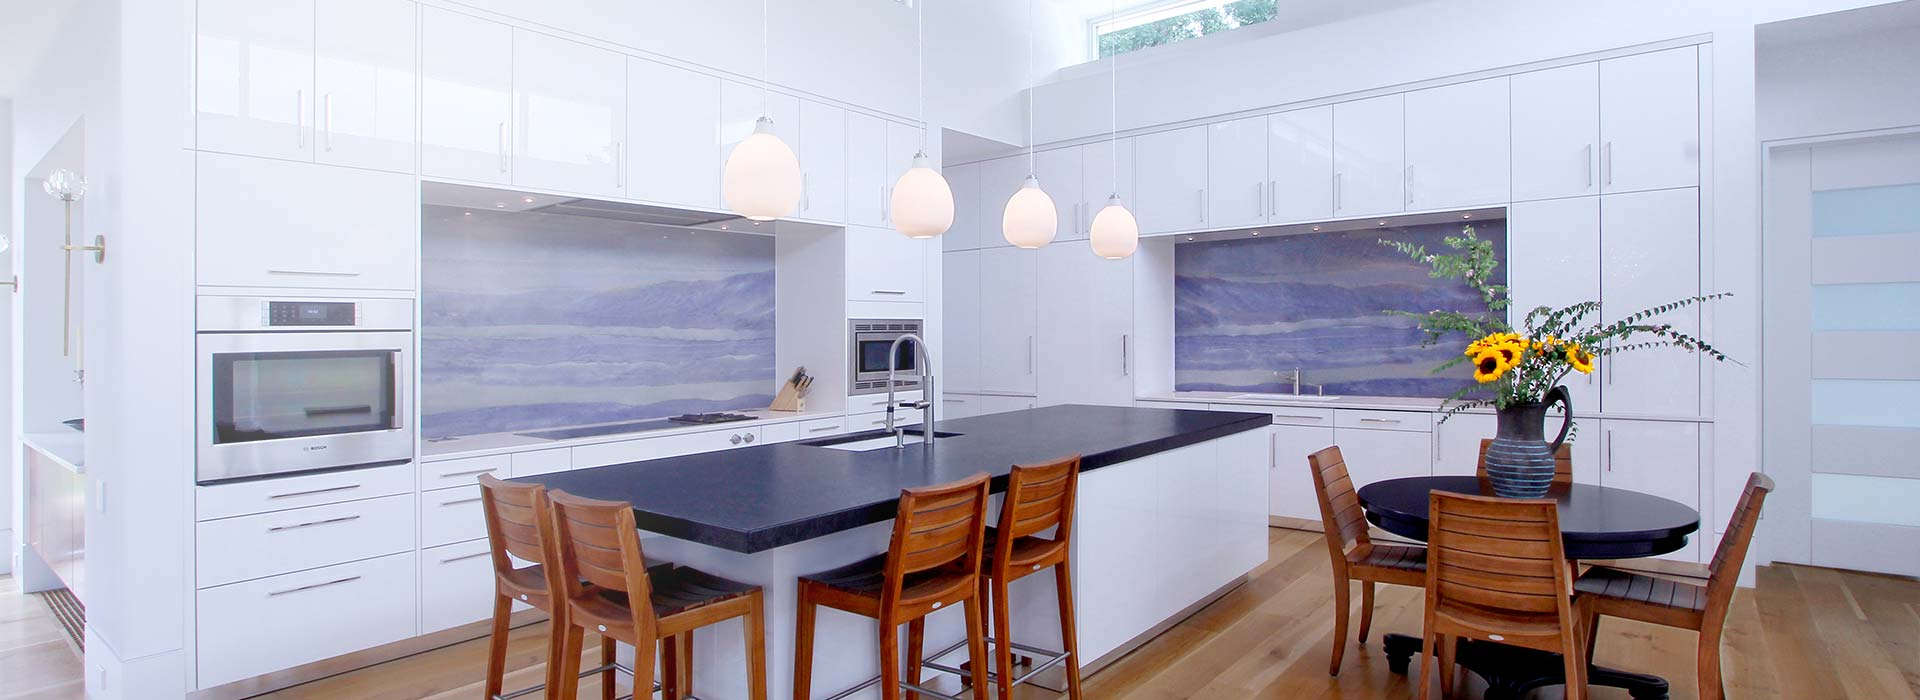 Chapel Hill Modern Architectural Kitchen Design and Remodel